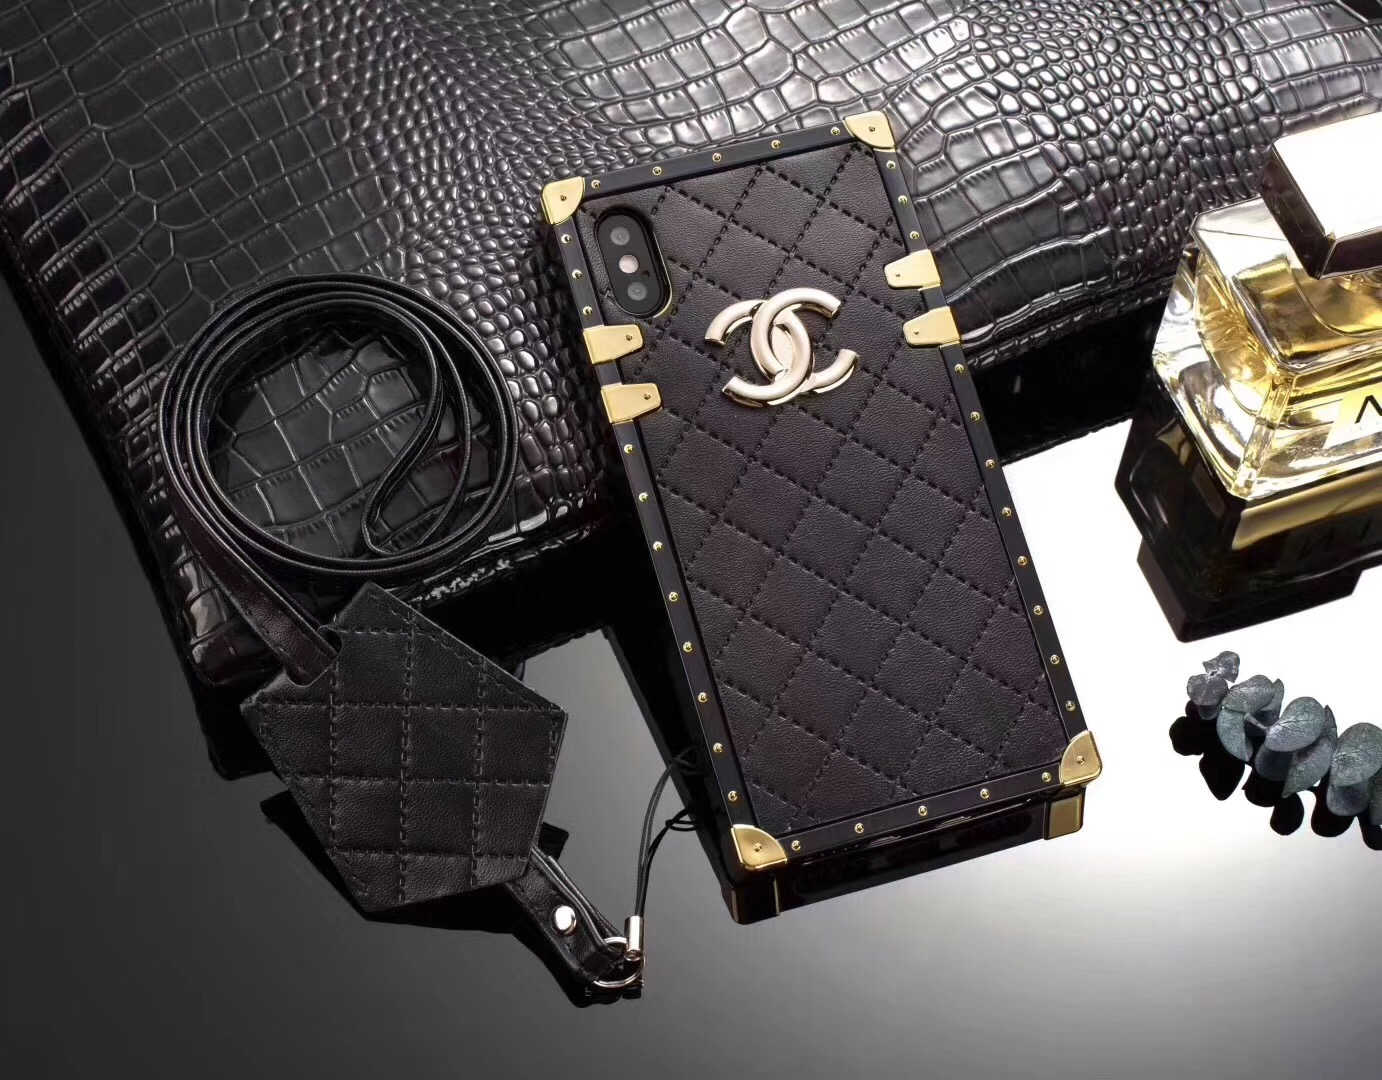 Chanel Iphone Cases - Best Iphone 2018